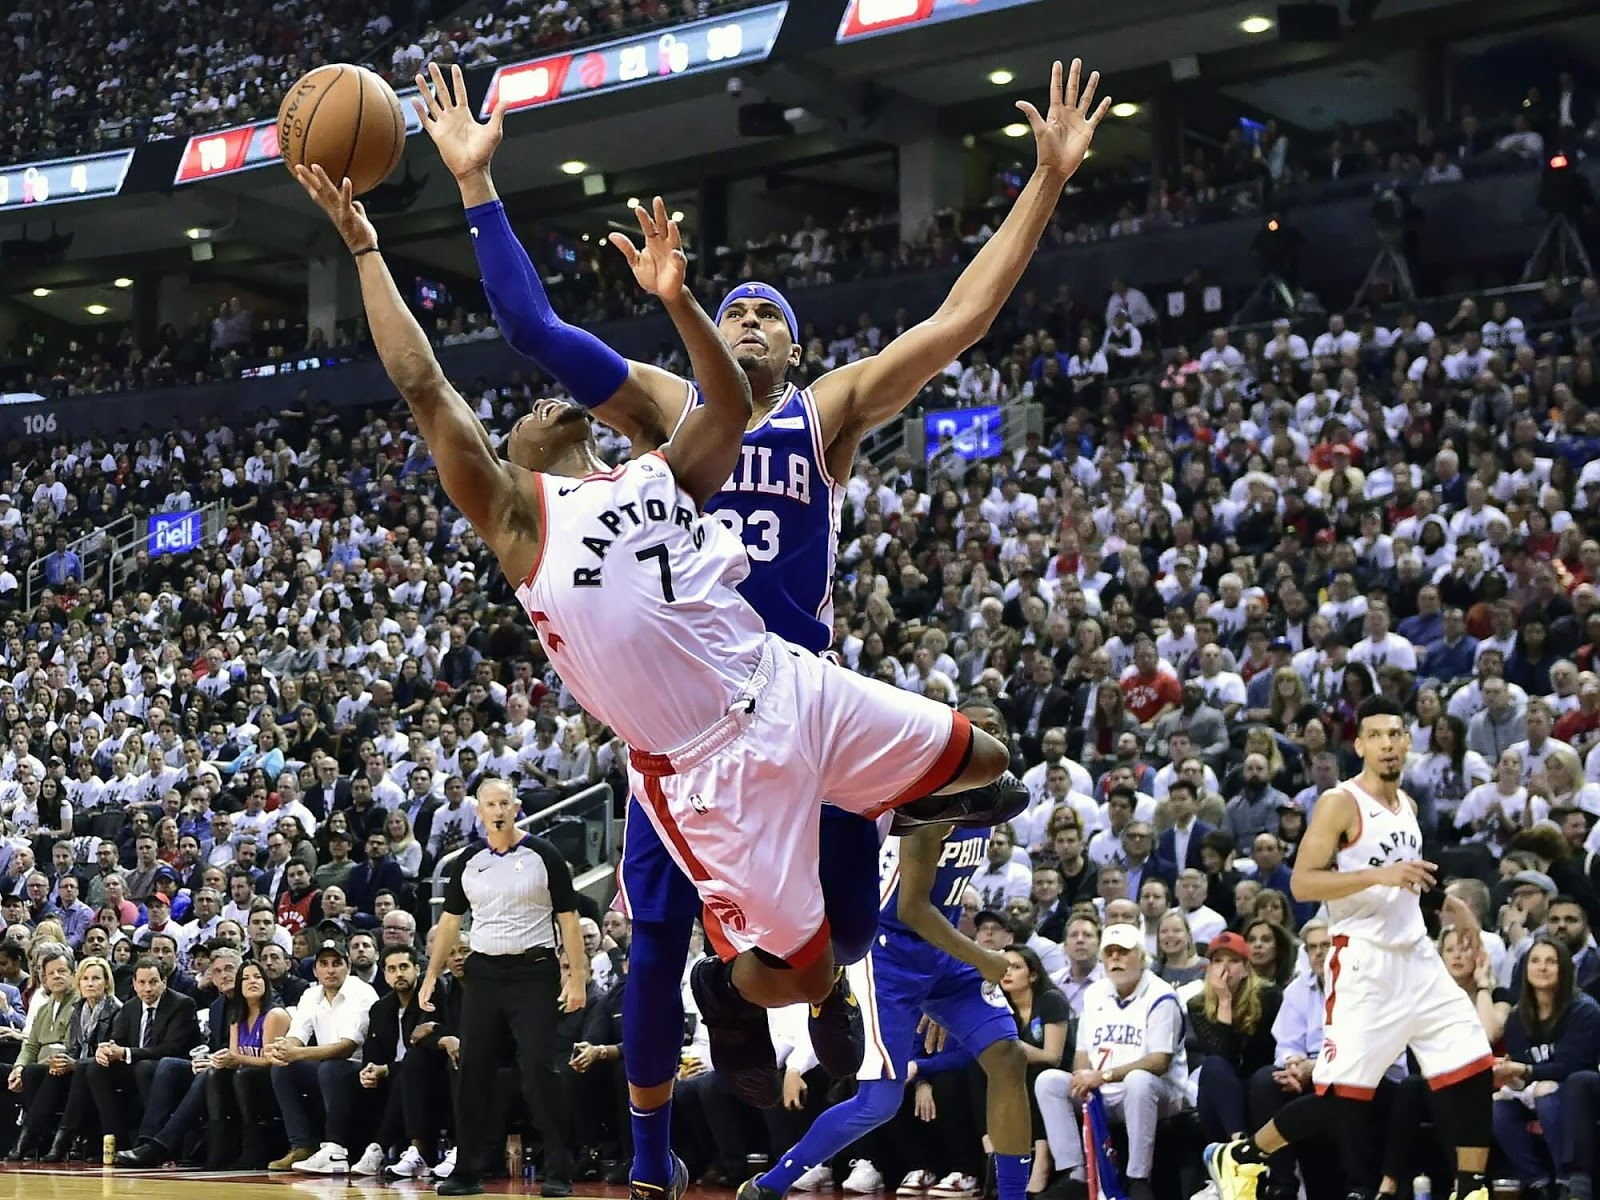 Butler scores 30 as 76ers beat Raptors 94-89 to even series